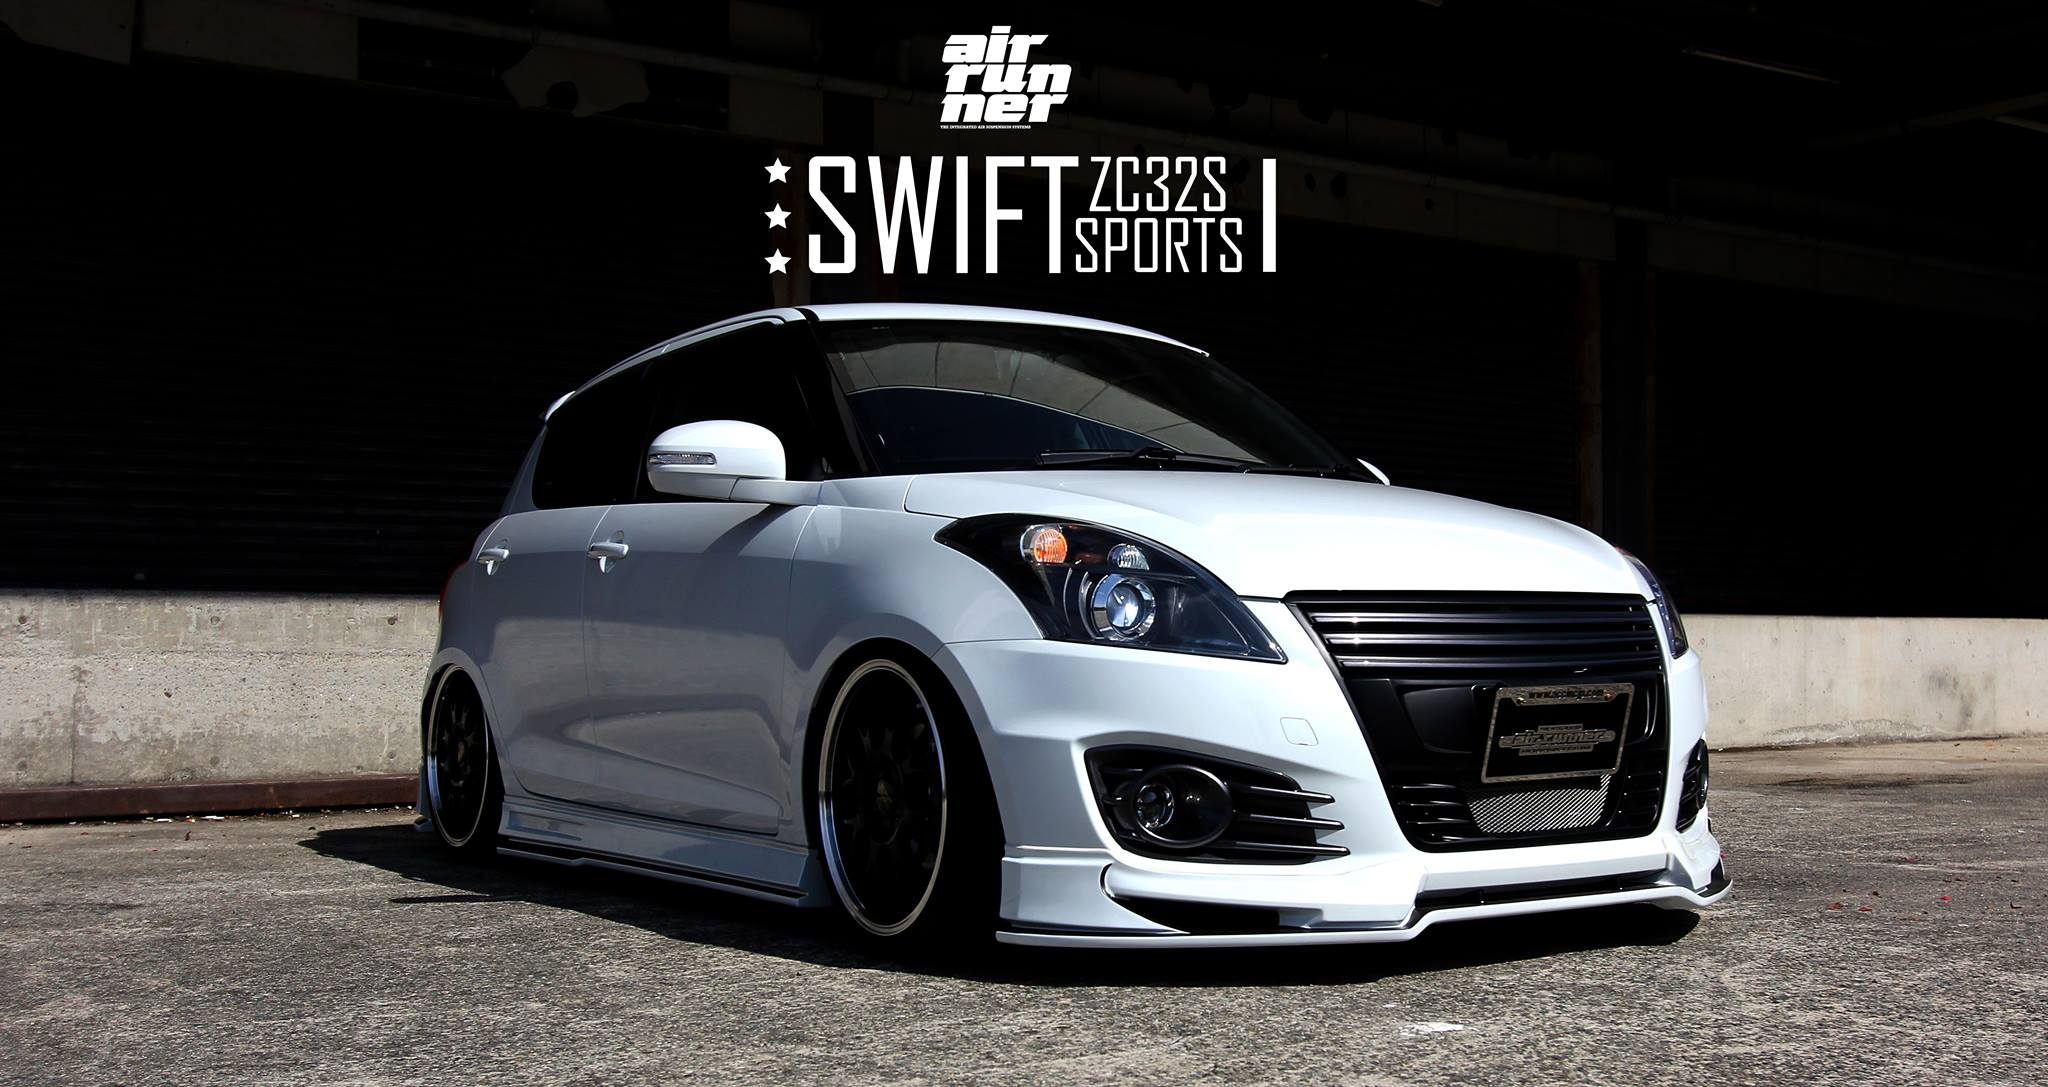 suzuki swift sport looks cool with beli kit and air ride suspension autoevolution. Black Bedroom Furniture Sets. Home Design Ideas